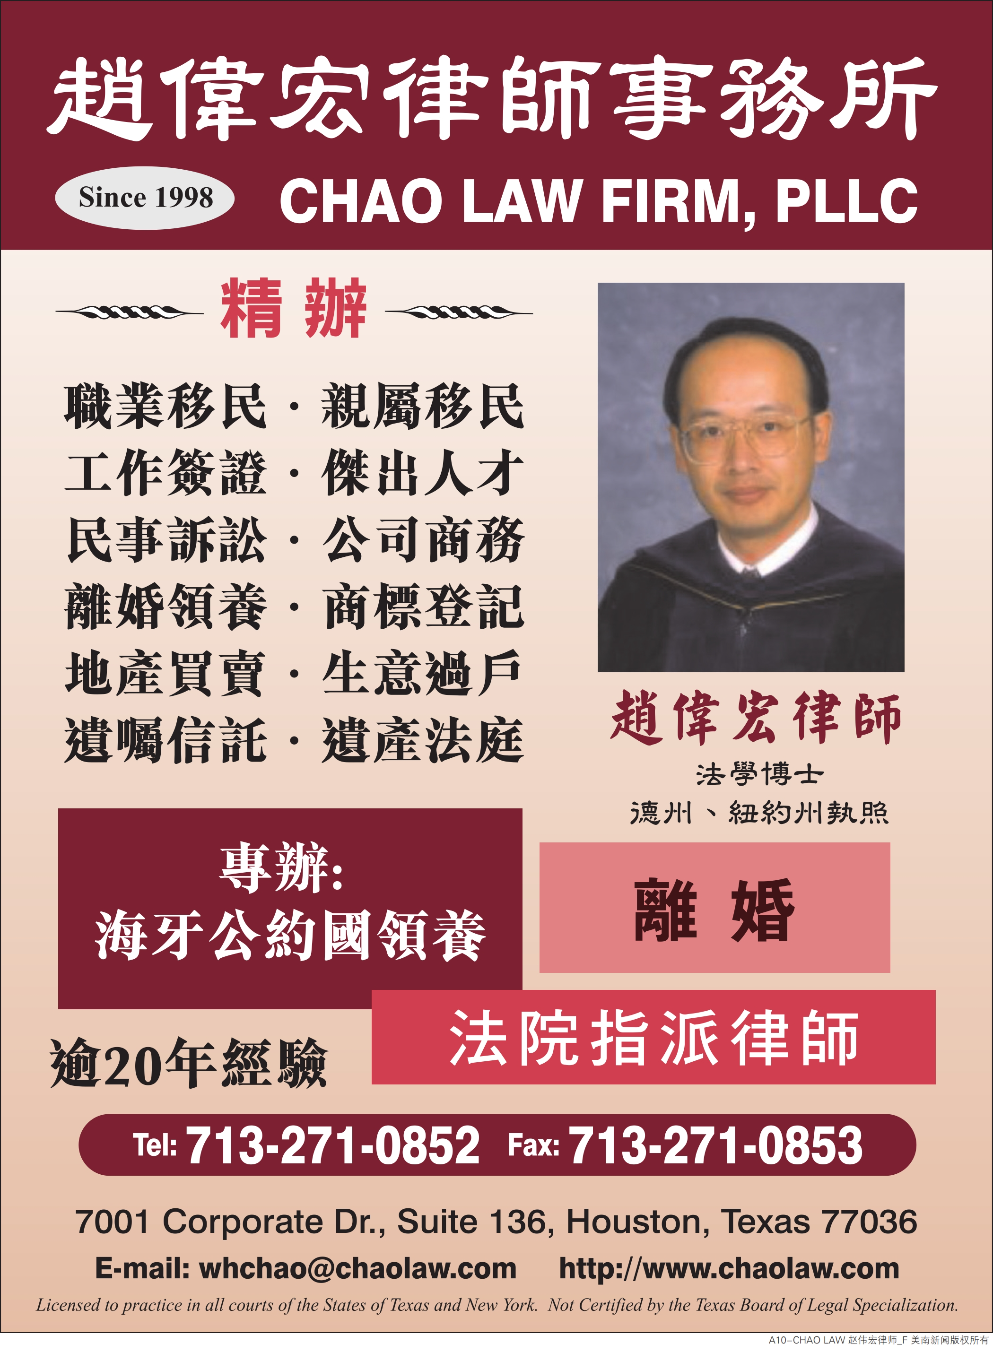 CHAO LAW FIRM 趙偉宏律師事務所